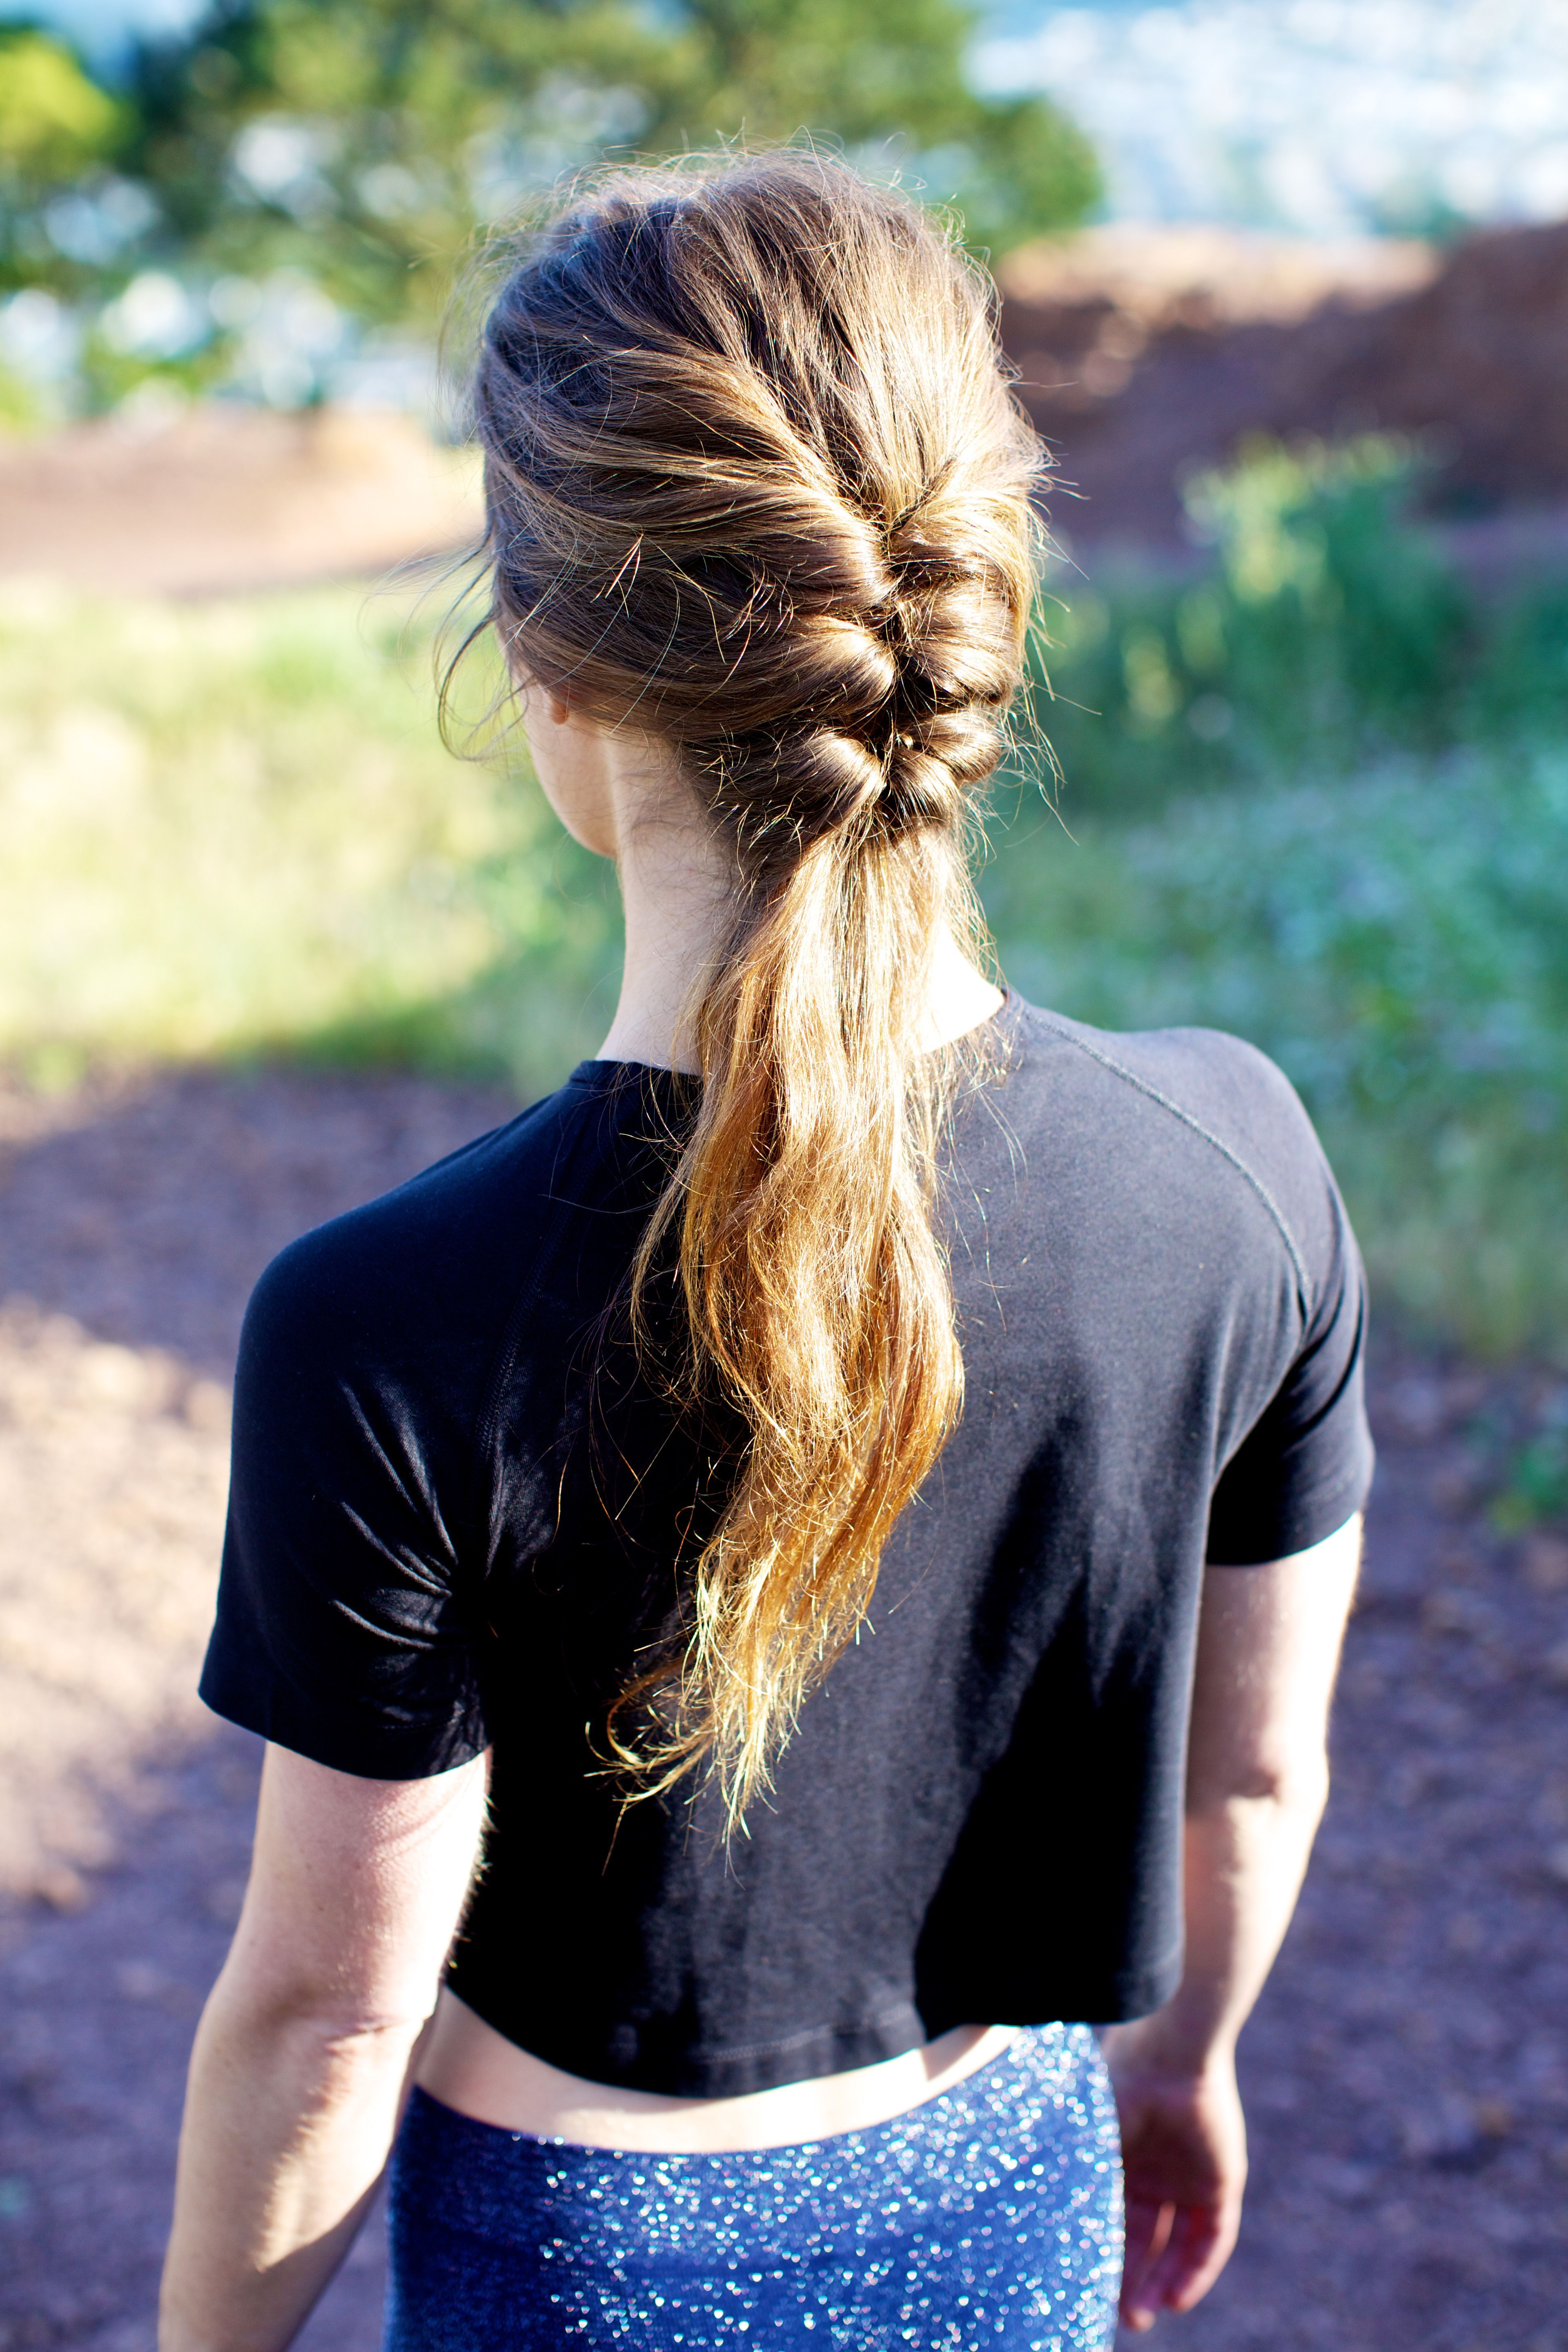 5 'Dos MADE For Active Ladies #refinery29 http://www.refinery29.com/workout-hairstyles#slide-27 If you're going: Hiking Be a trailblazer with this easy-peasy pulled-back 'do. It's great for hitting the hills and battling any gust Karl the Fog throws your way.